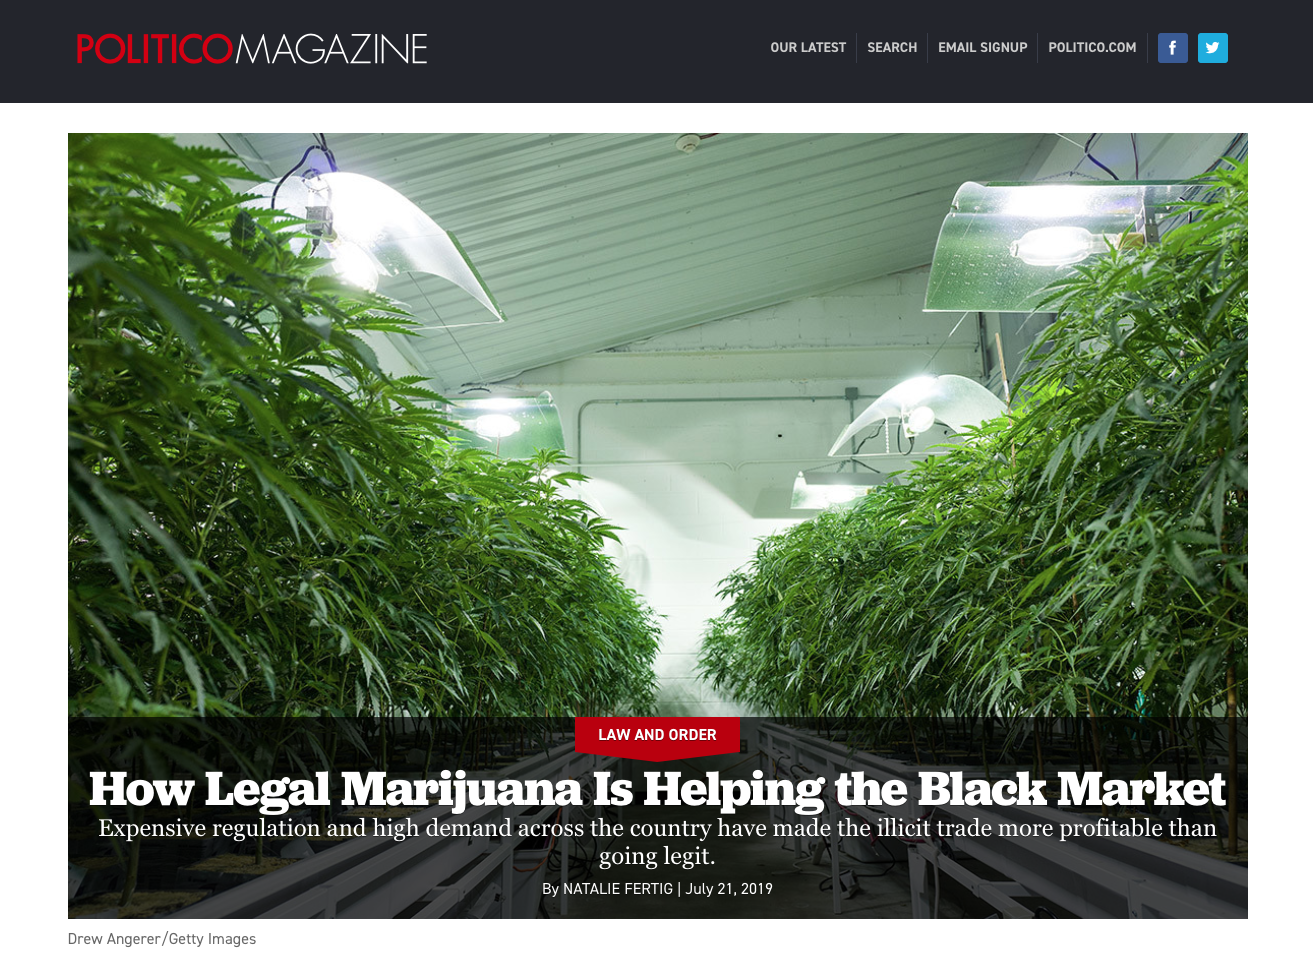 How Legal Marijuana Is Helping the Black Market